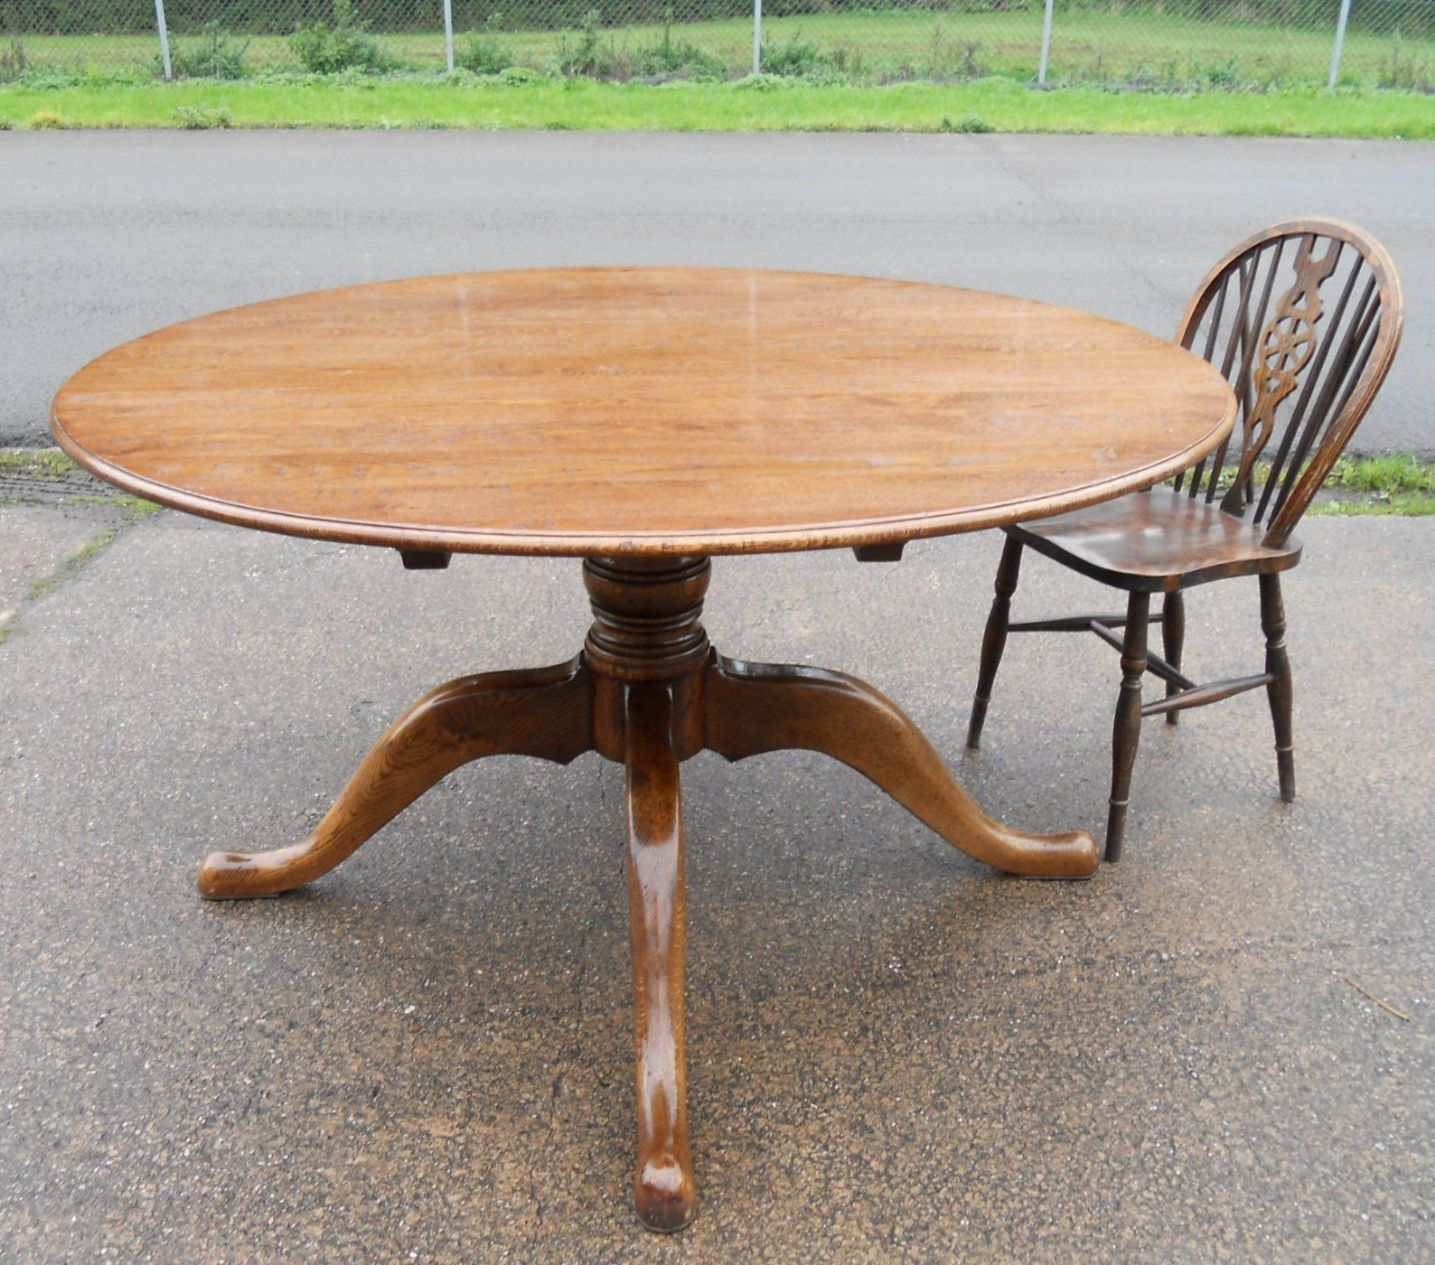 Sold Large Round Oak Pedestal Dining Table To Seat Eight